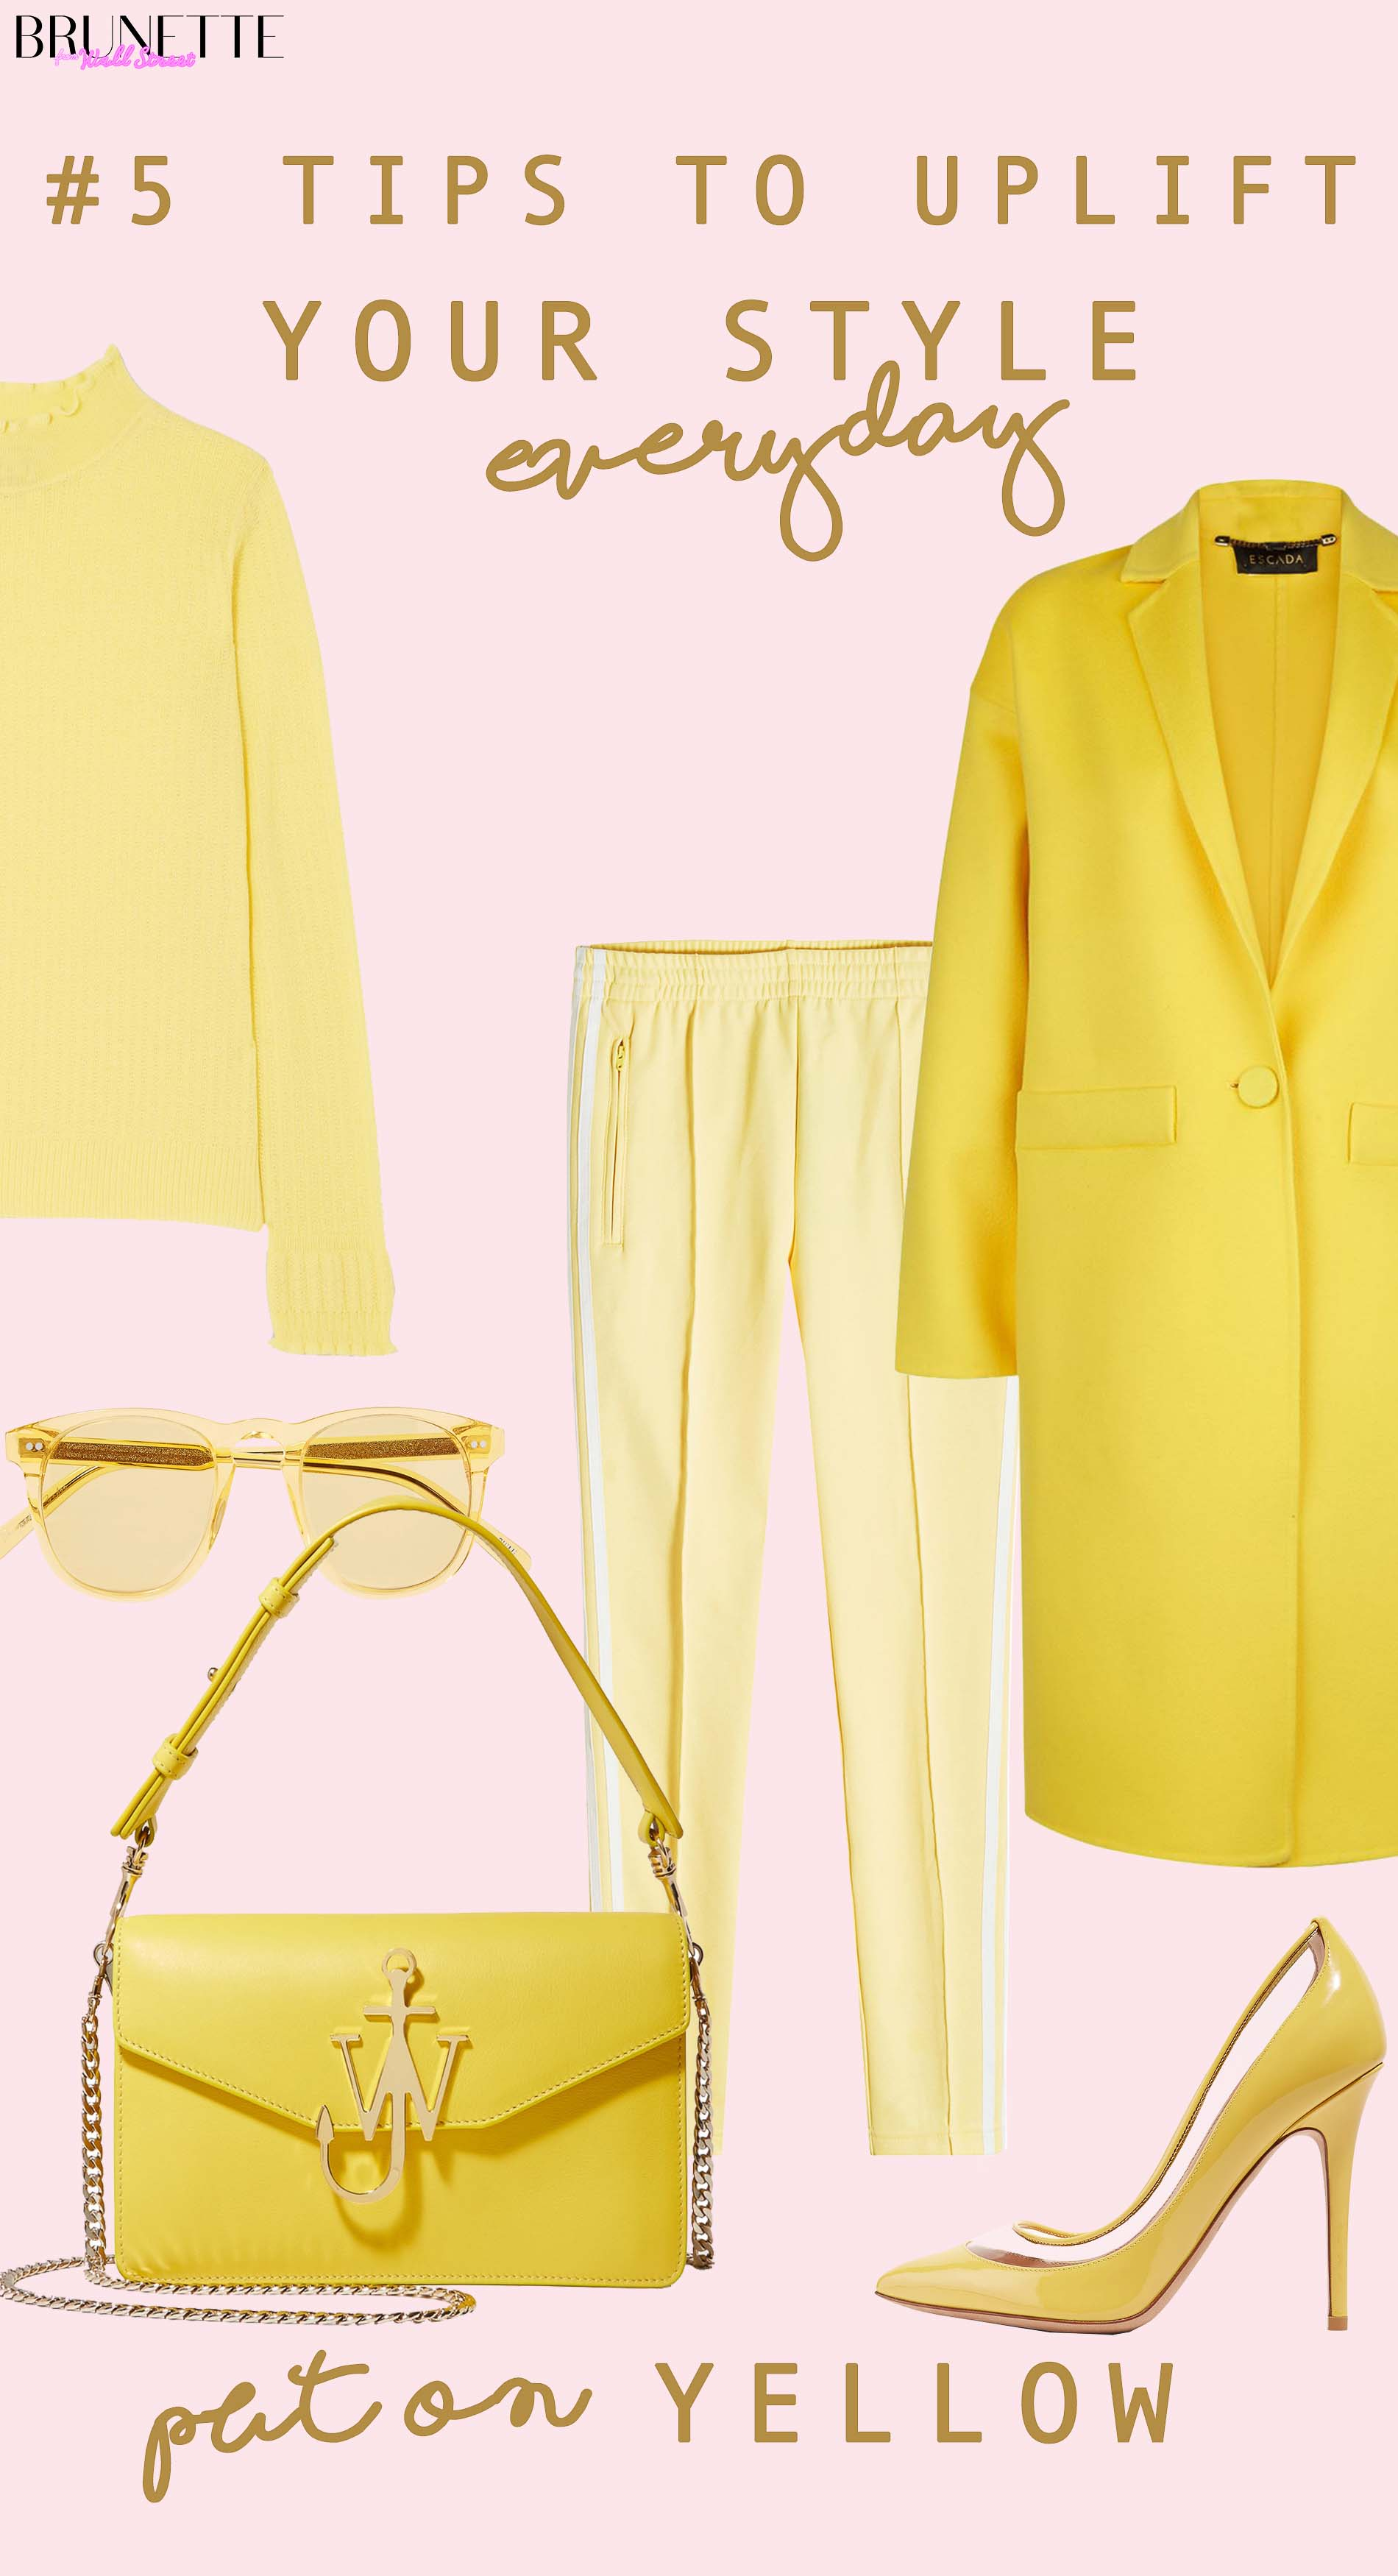 Yellow monochrome outfits with text overlay #5 Things that will instantly uplift your everyday style yellow